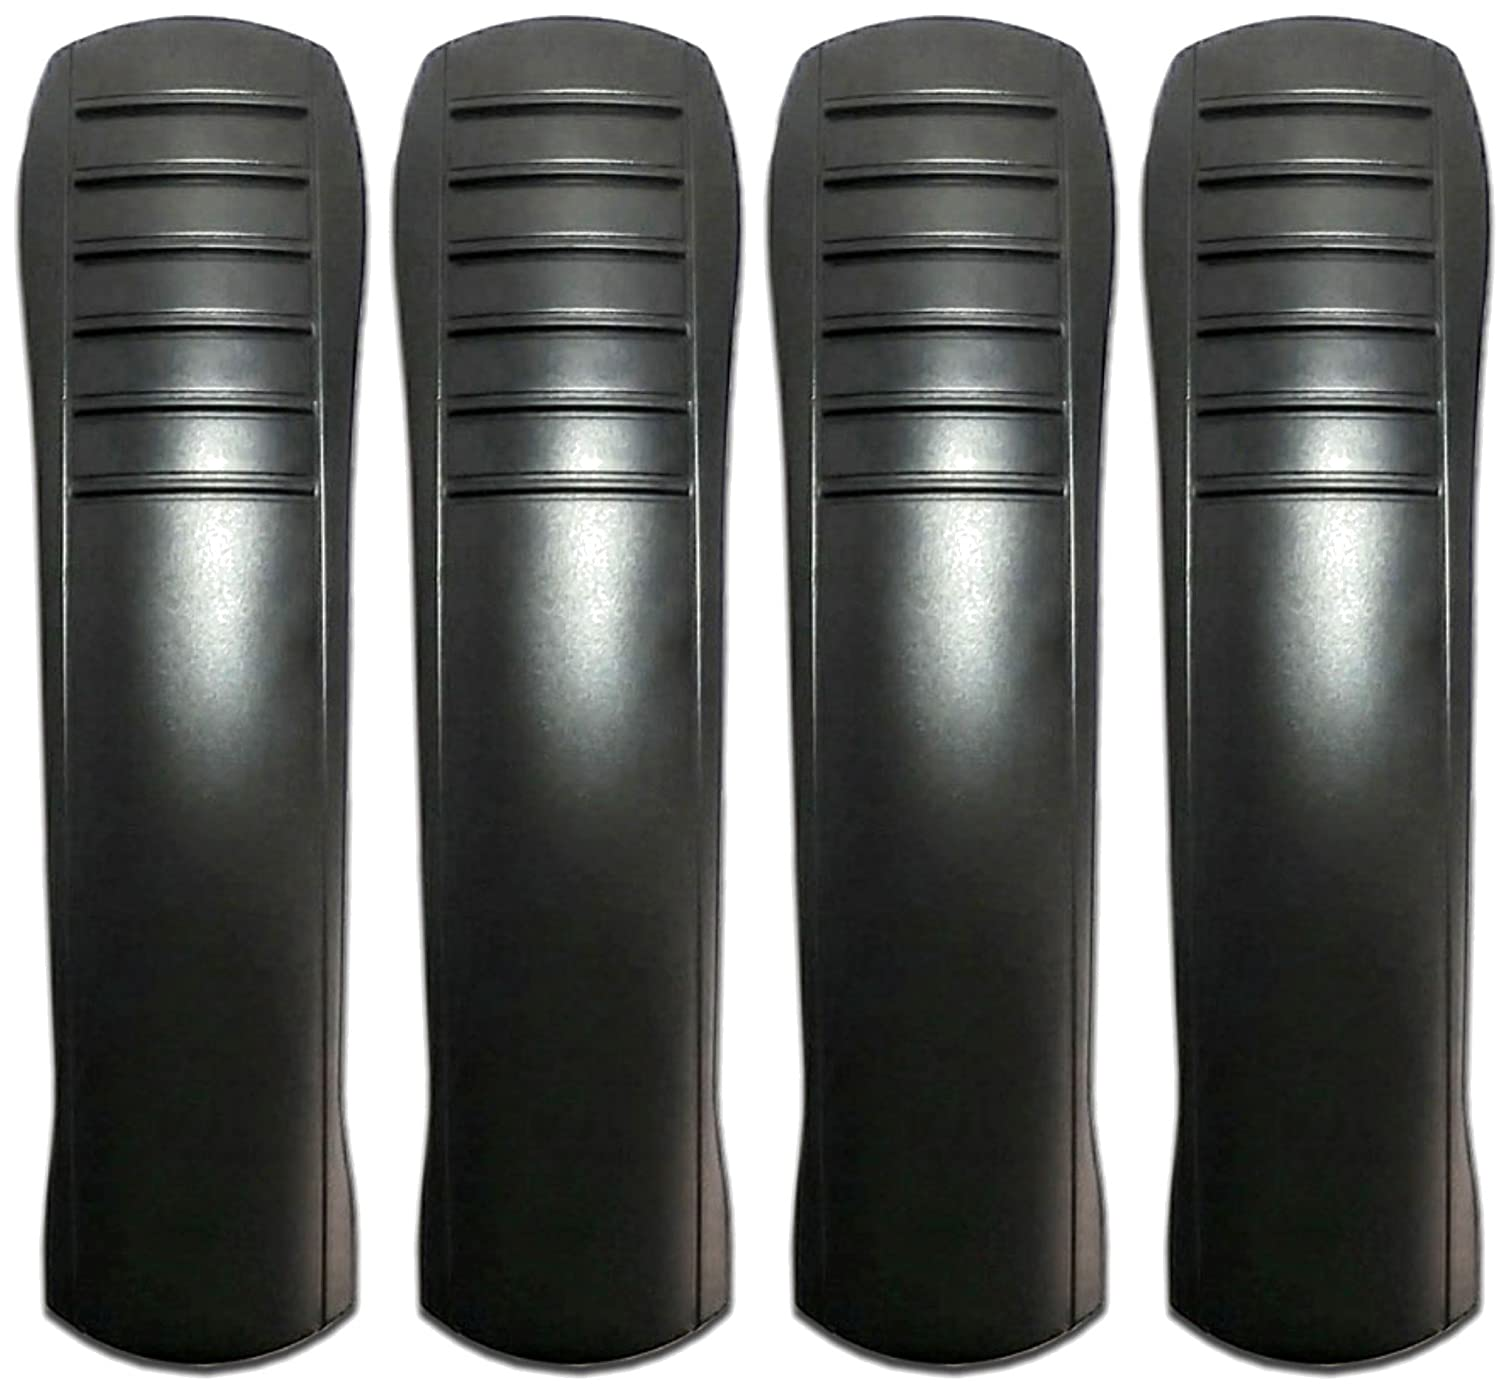 5320e 5330 and 5360 5340 5215 Fits 5304 4 Pack 5220 5312 5340e and 5235 5324 5320 Mitel 5300 Compatible Handset 5330e Also Fits 5207